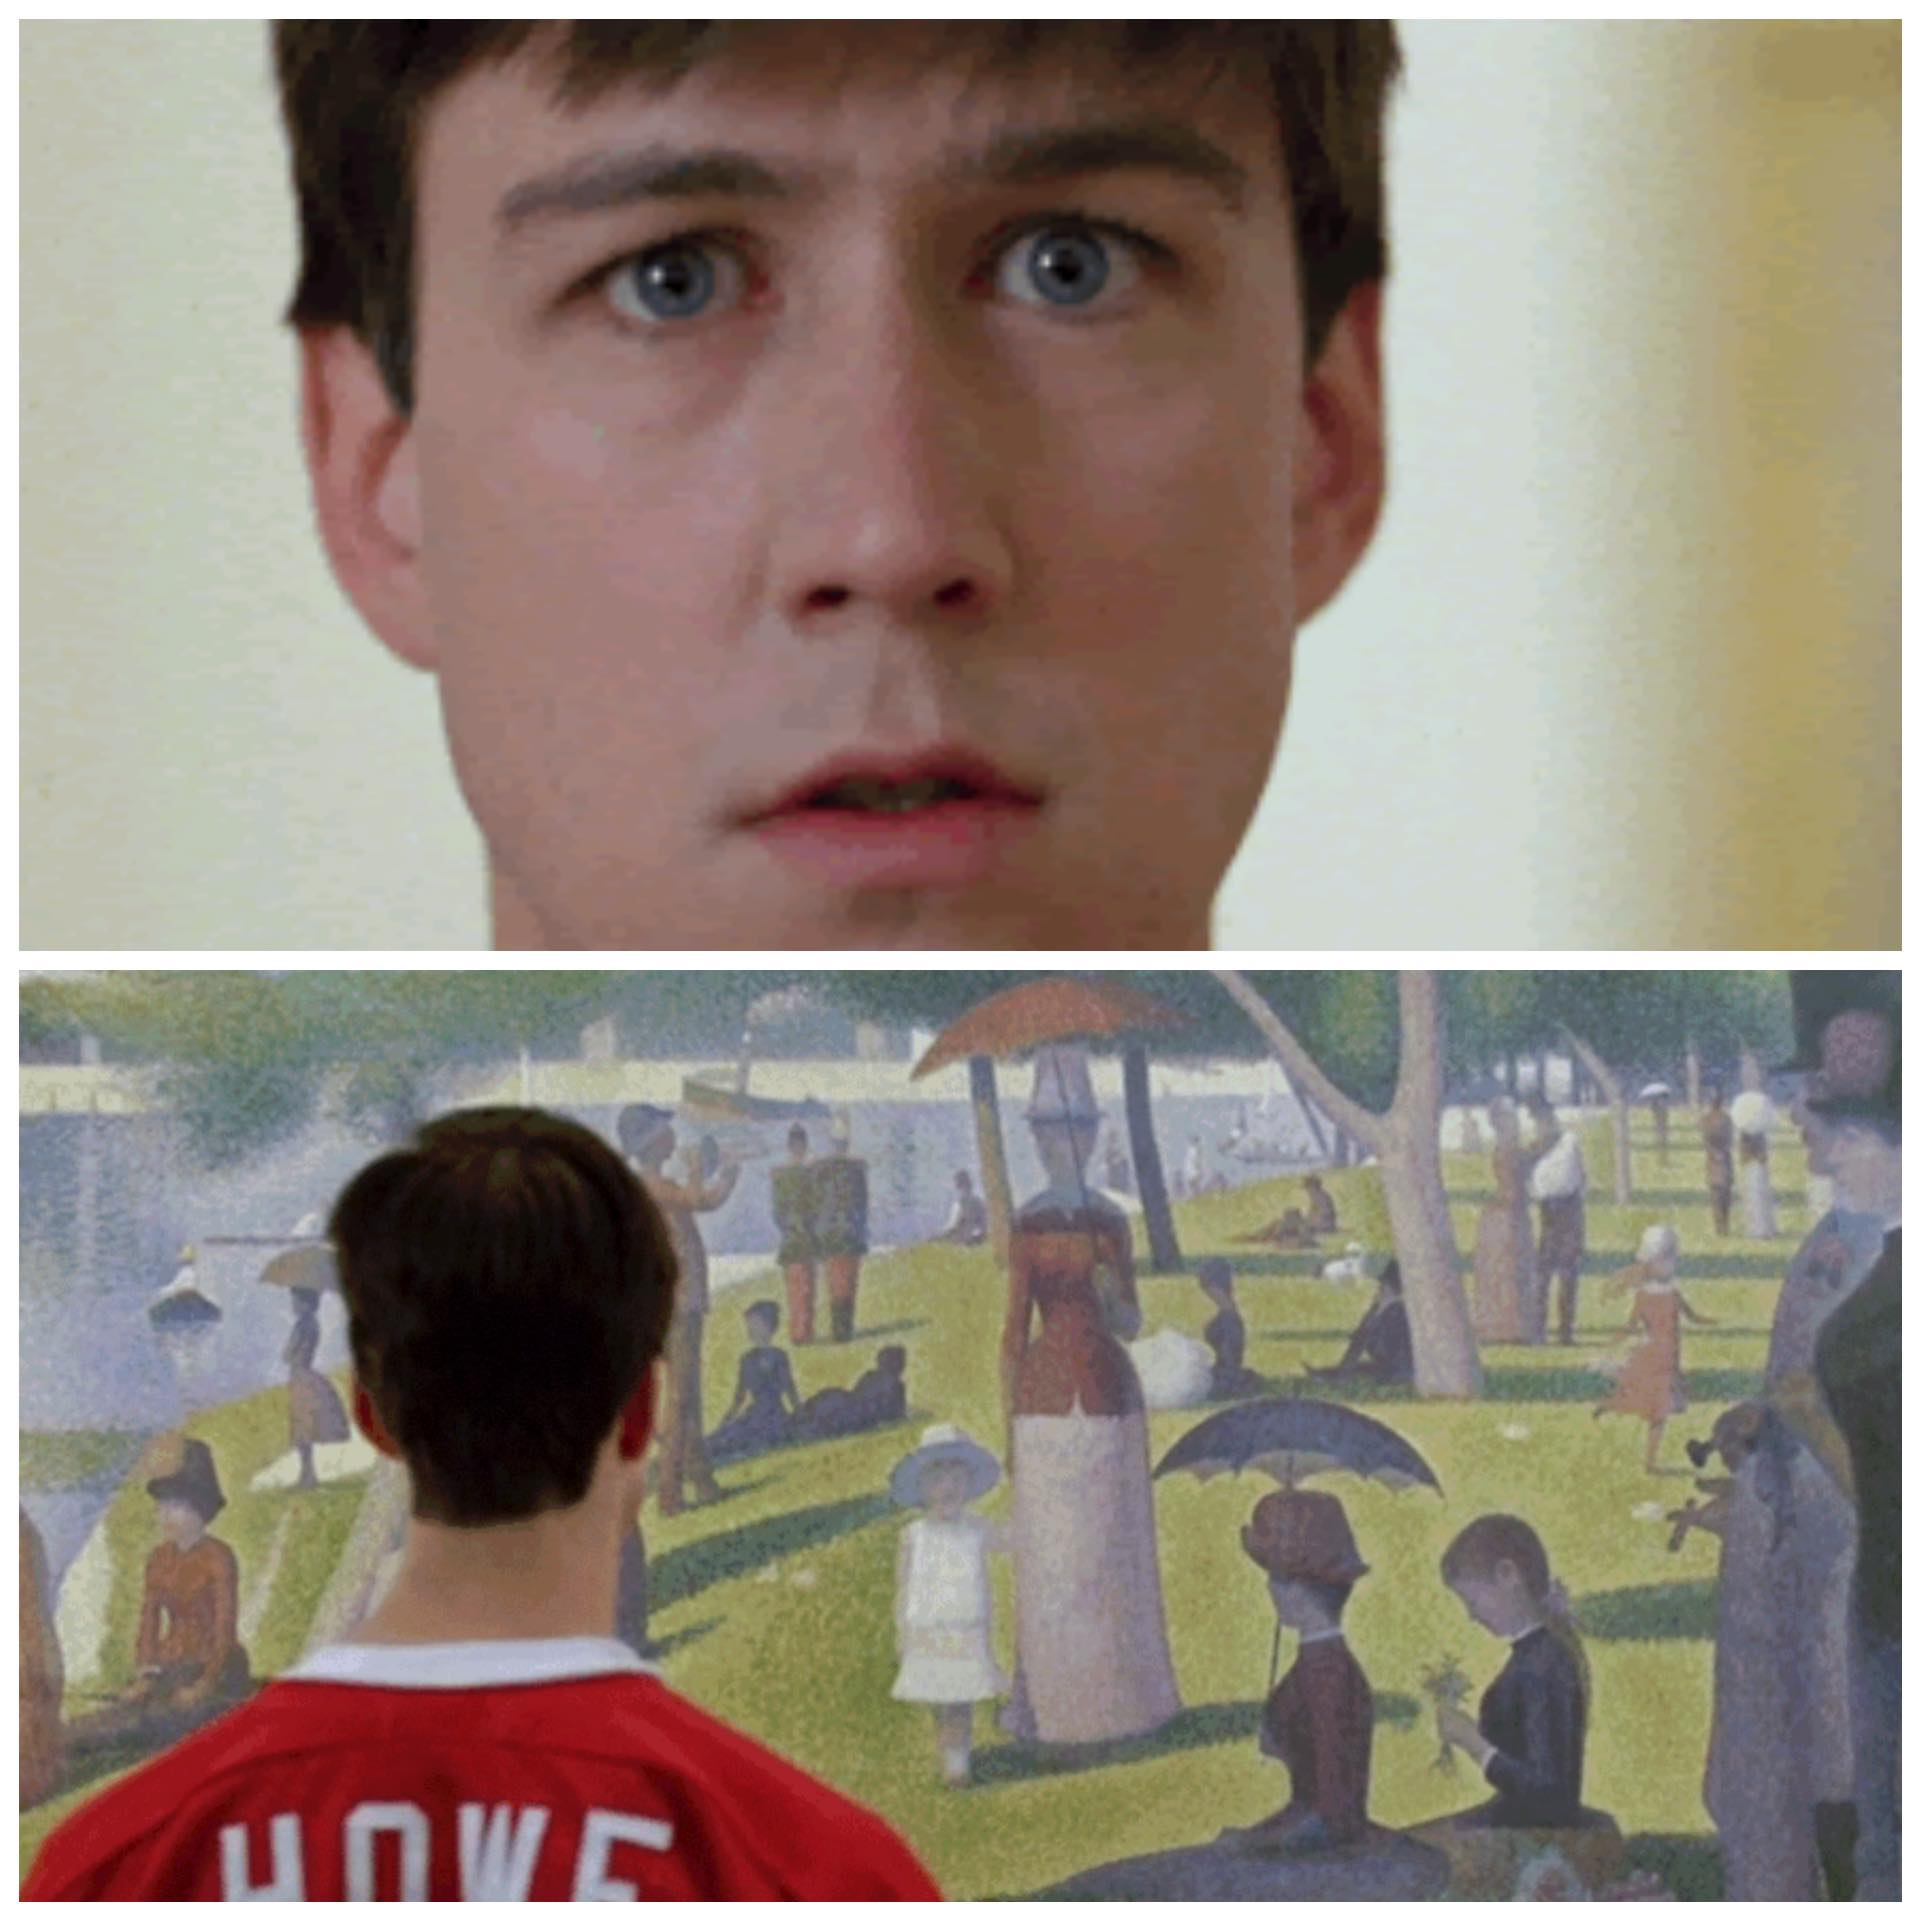 Cameron at The Art Institute Ferris Bueller's Day Off